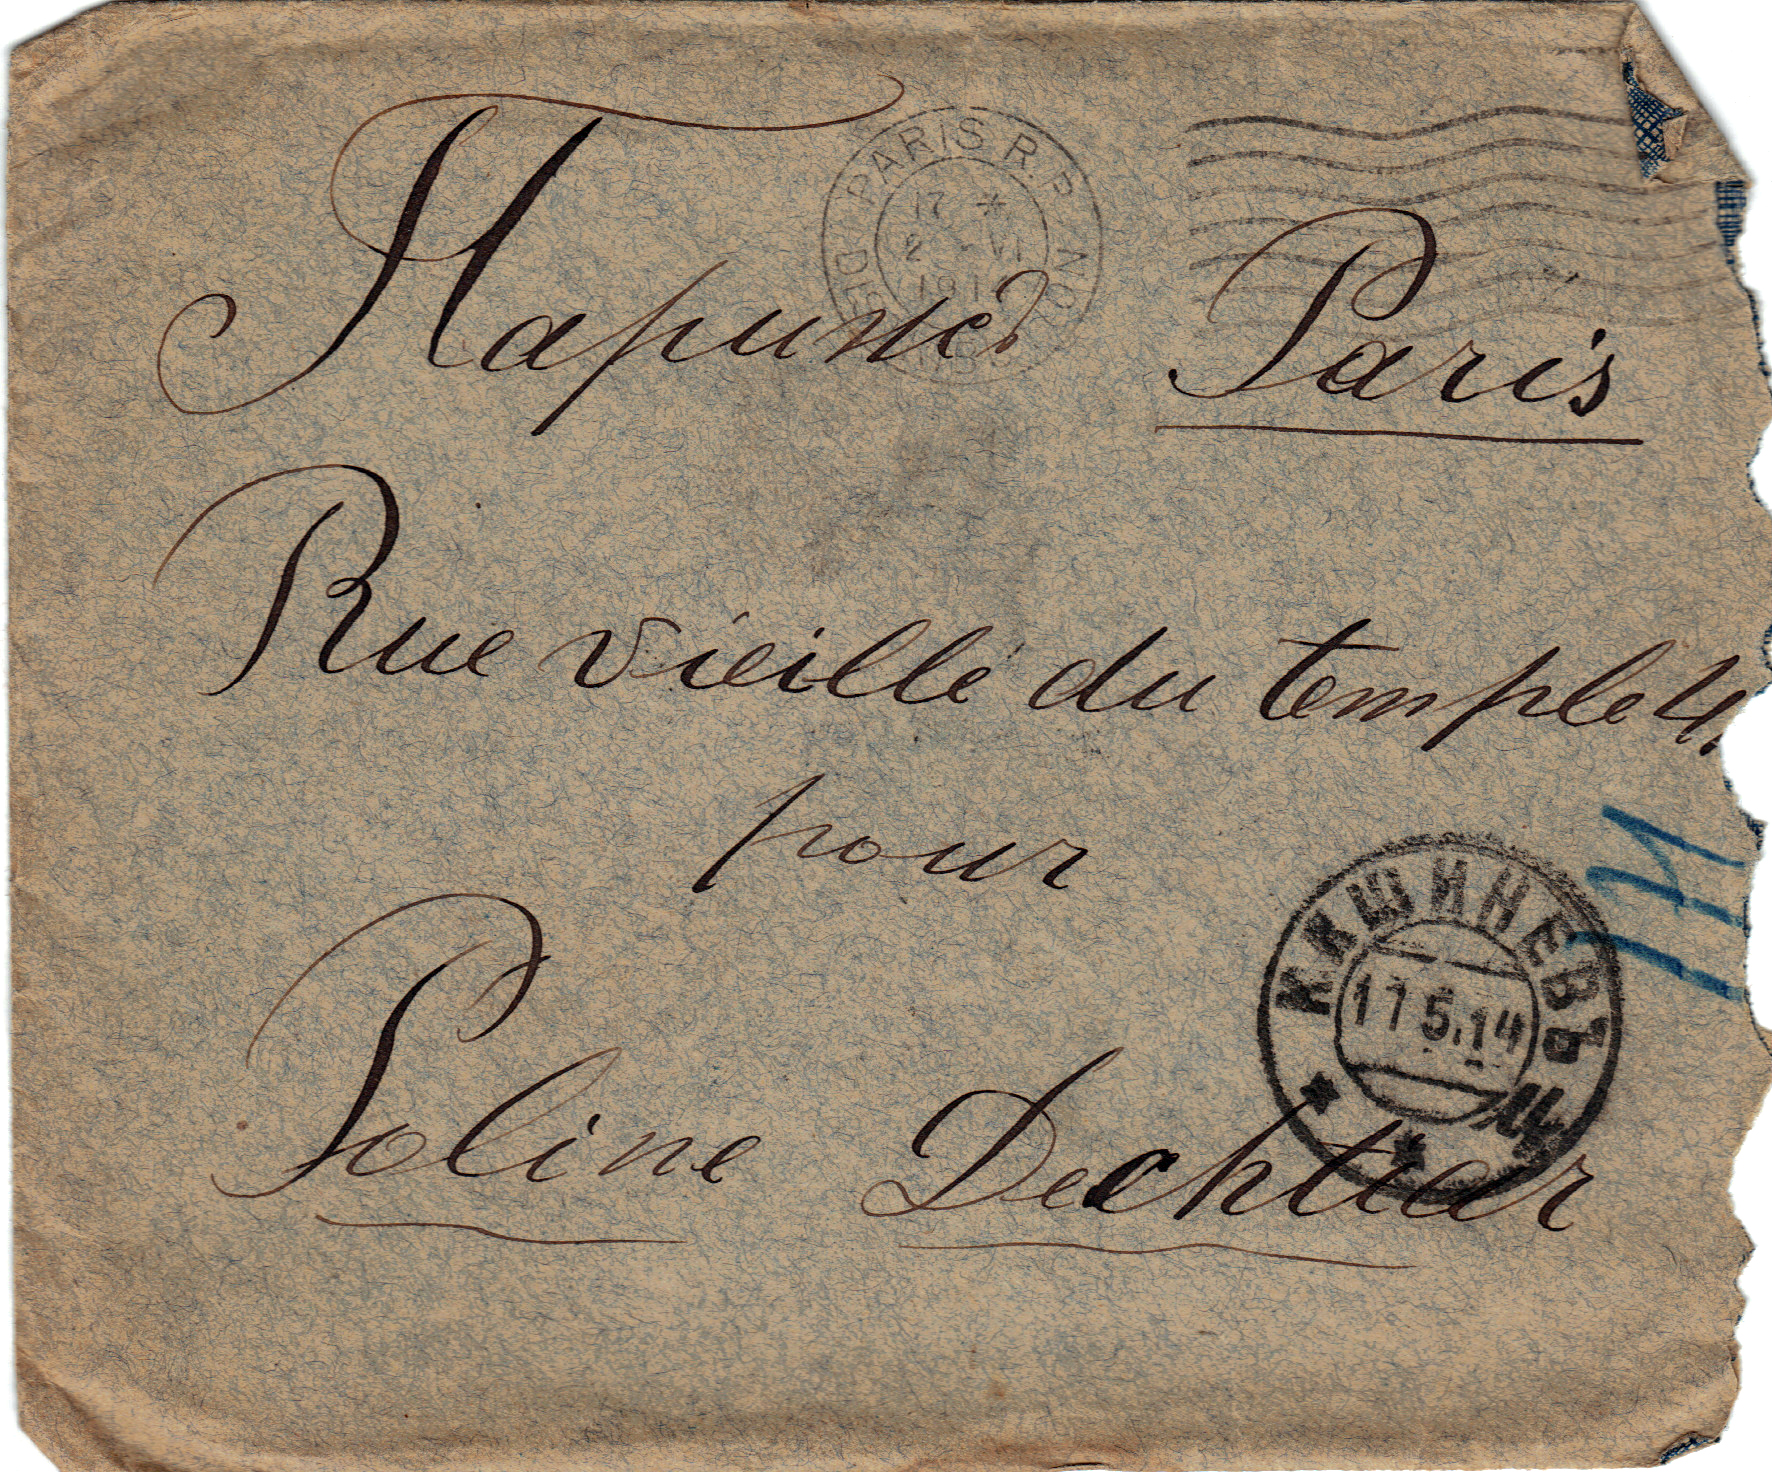 Letter to Poline from Aron May 17, 1914 envelope A